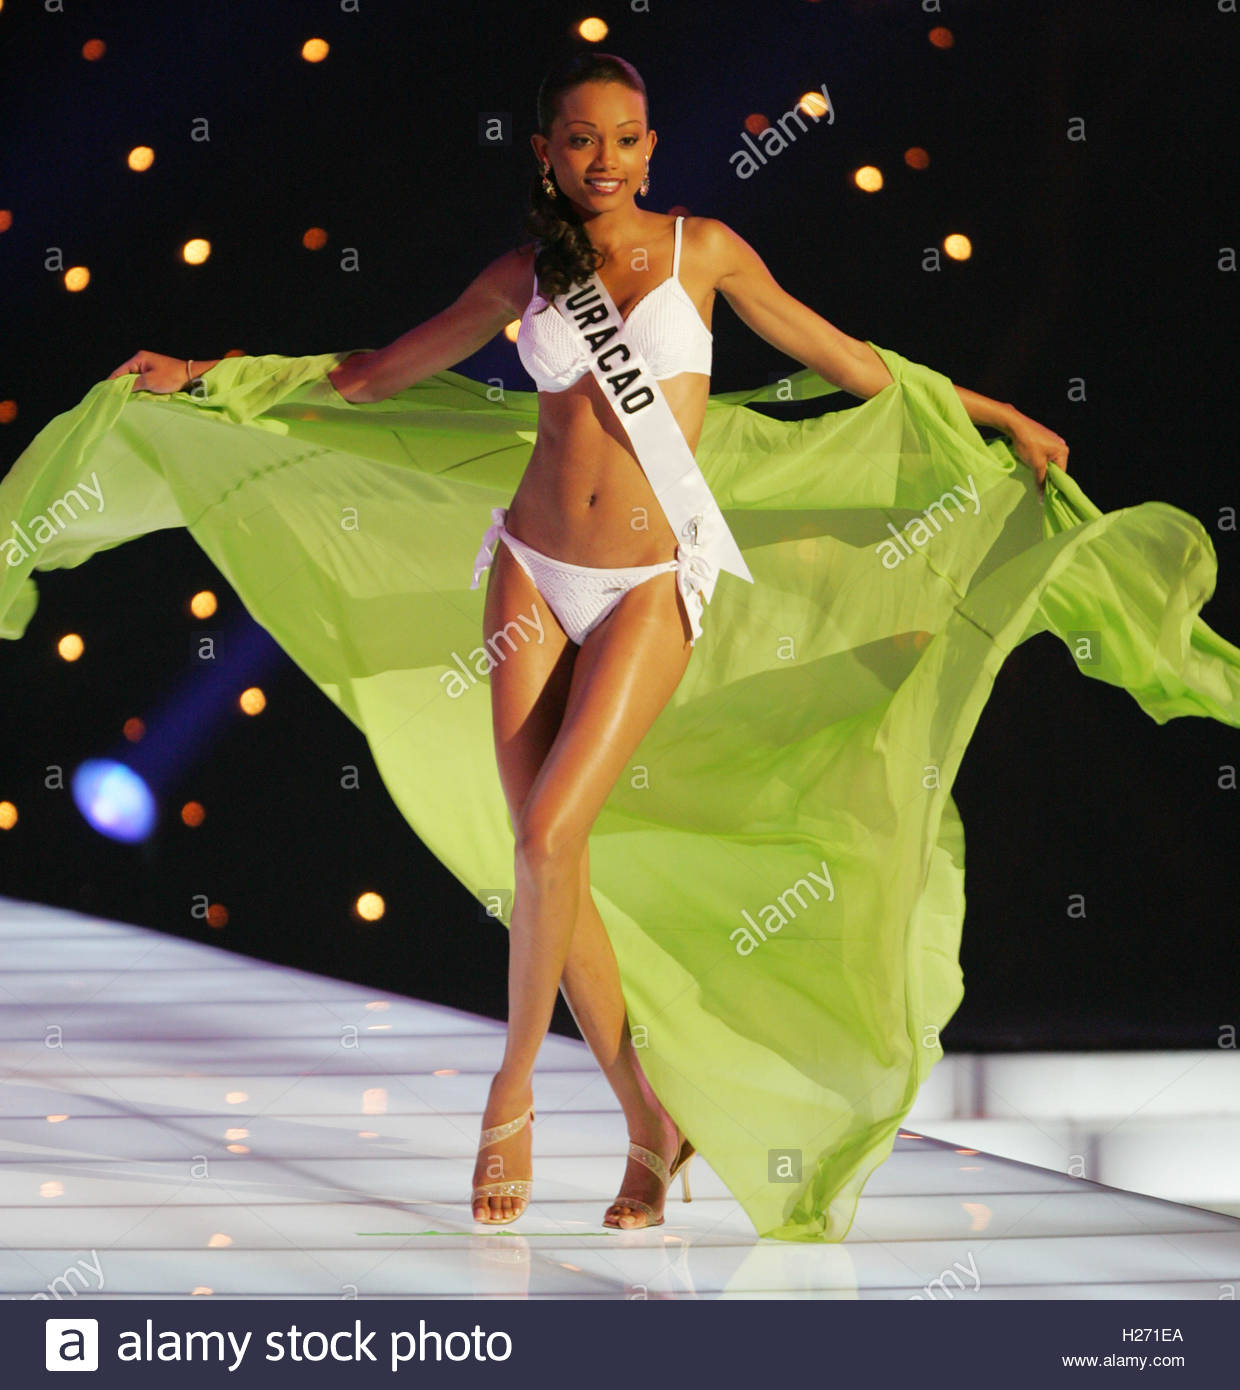 miss-universe-2005-contestant-rychacvian